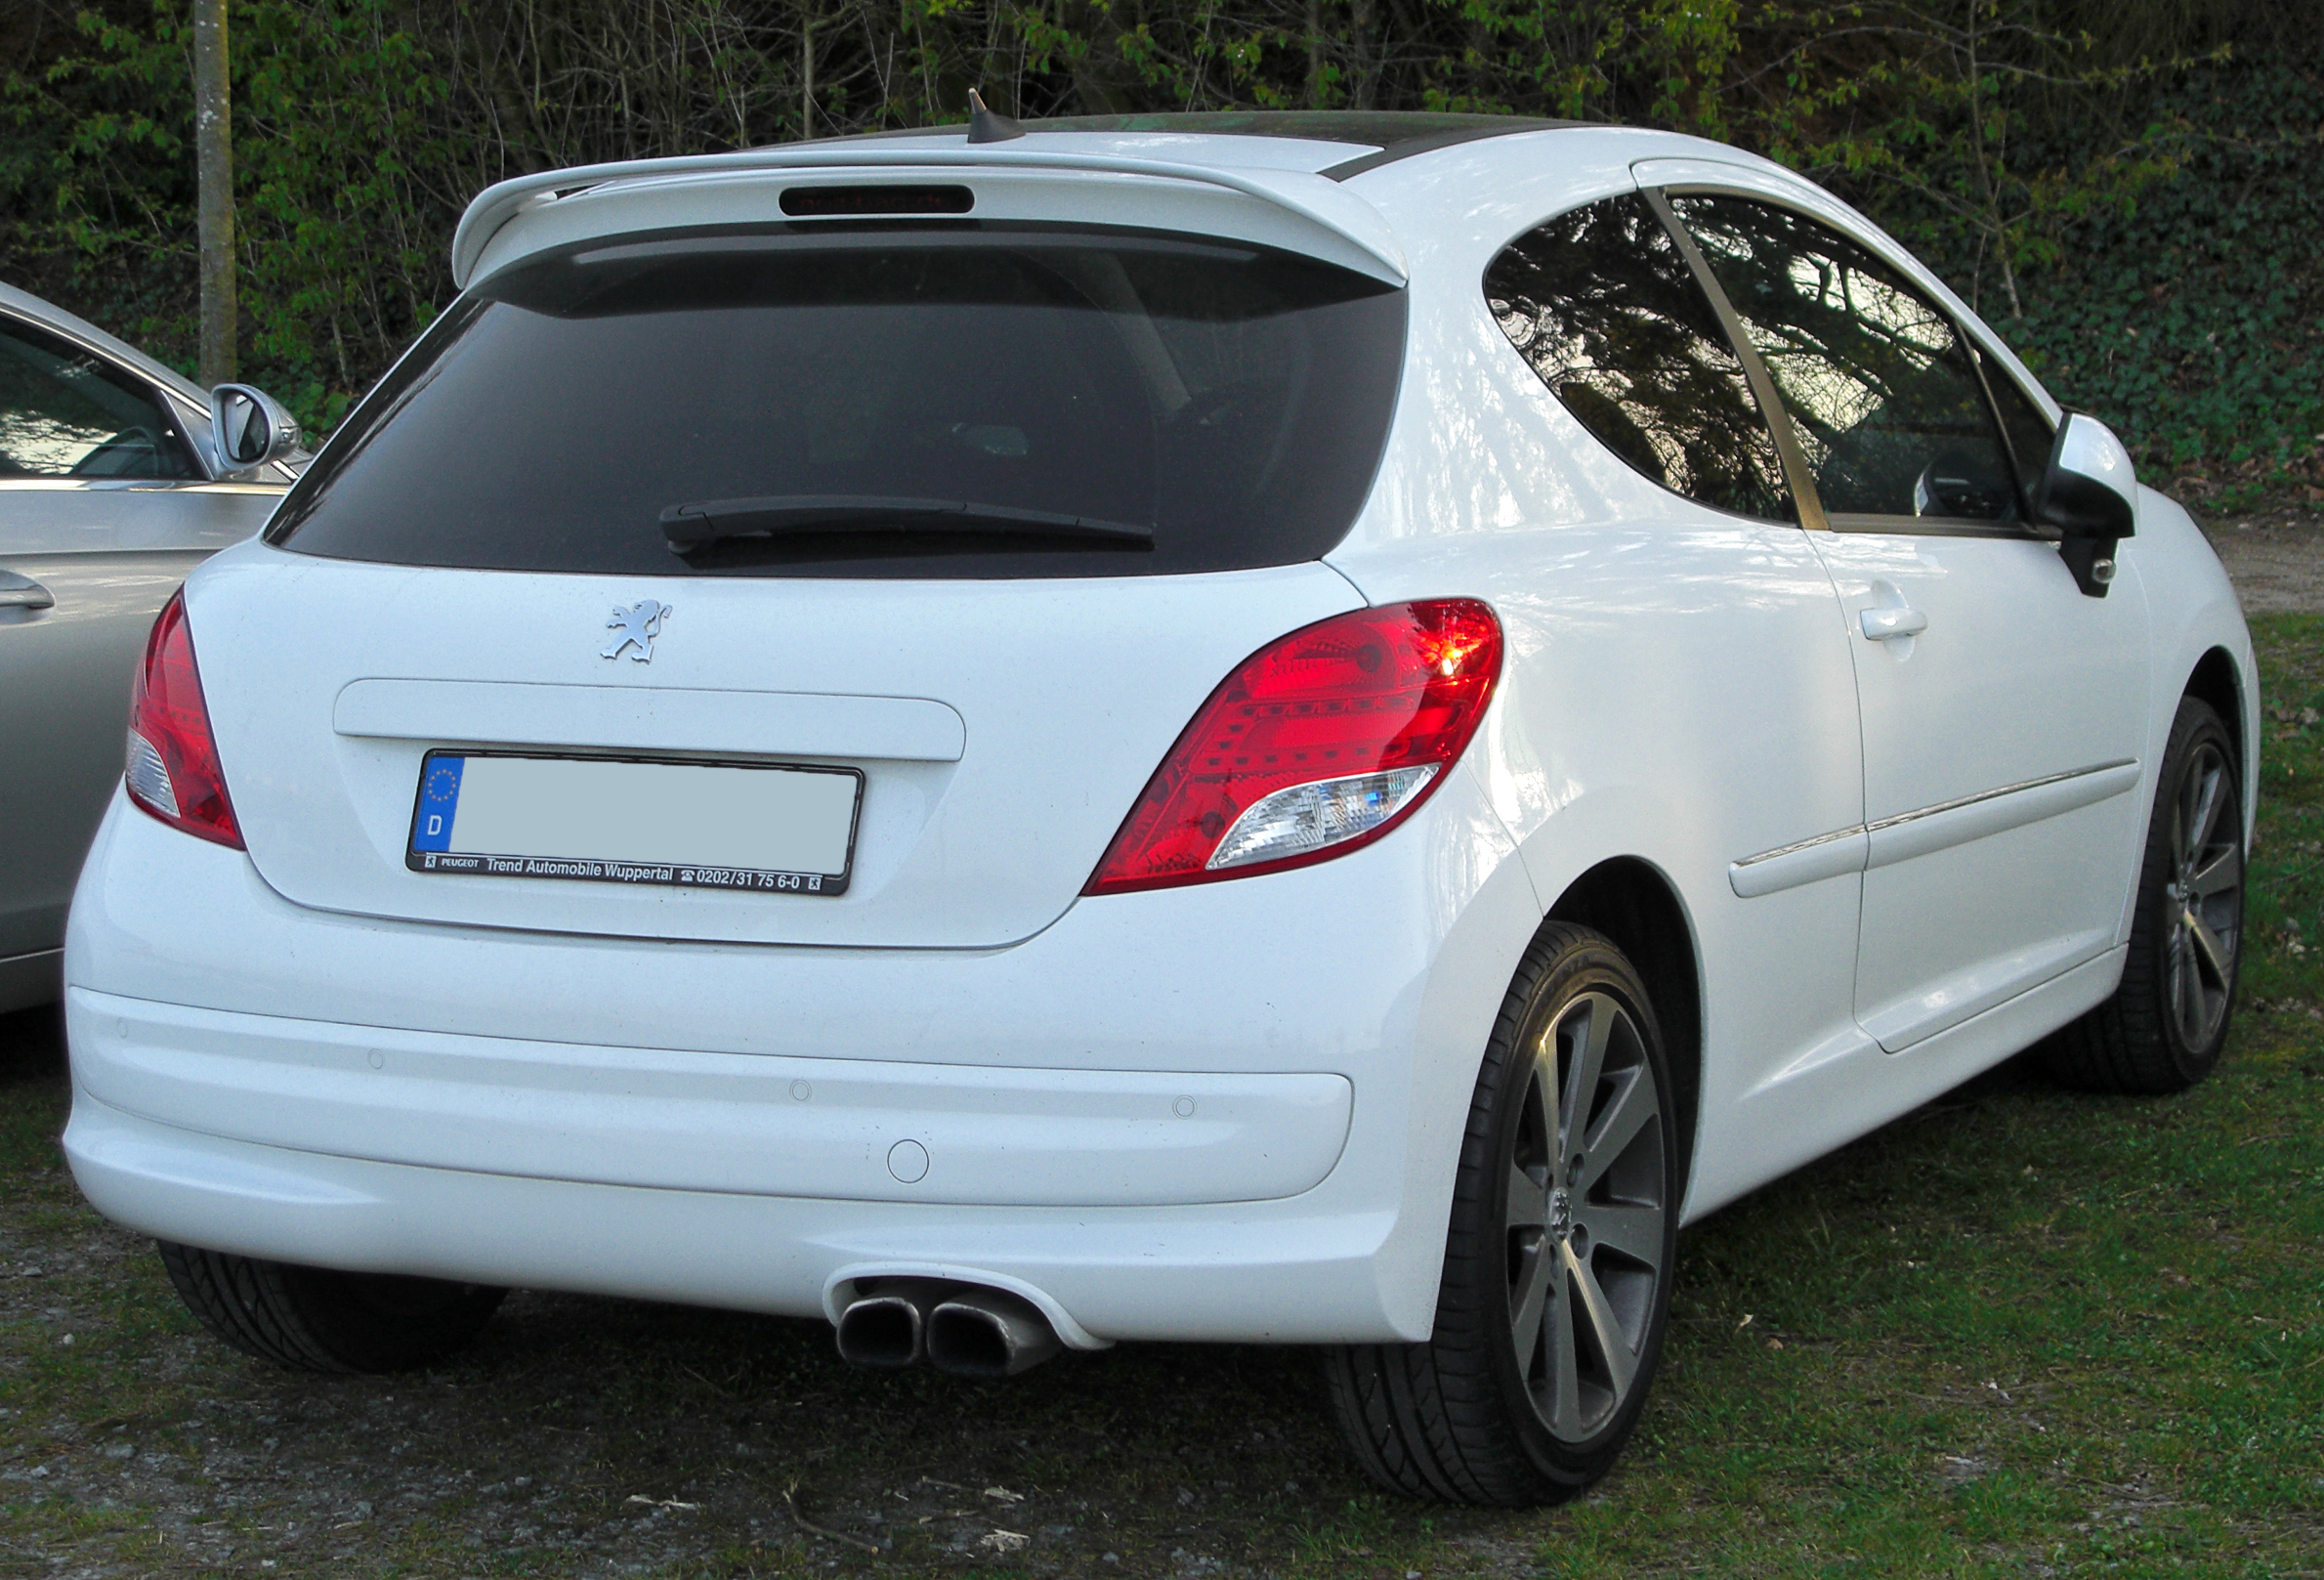 File:Peugeot 207 RC Facelift rear 20100416.jpg